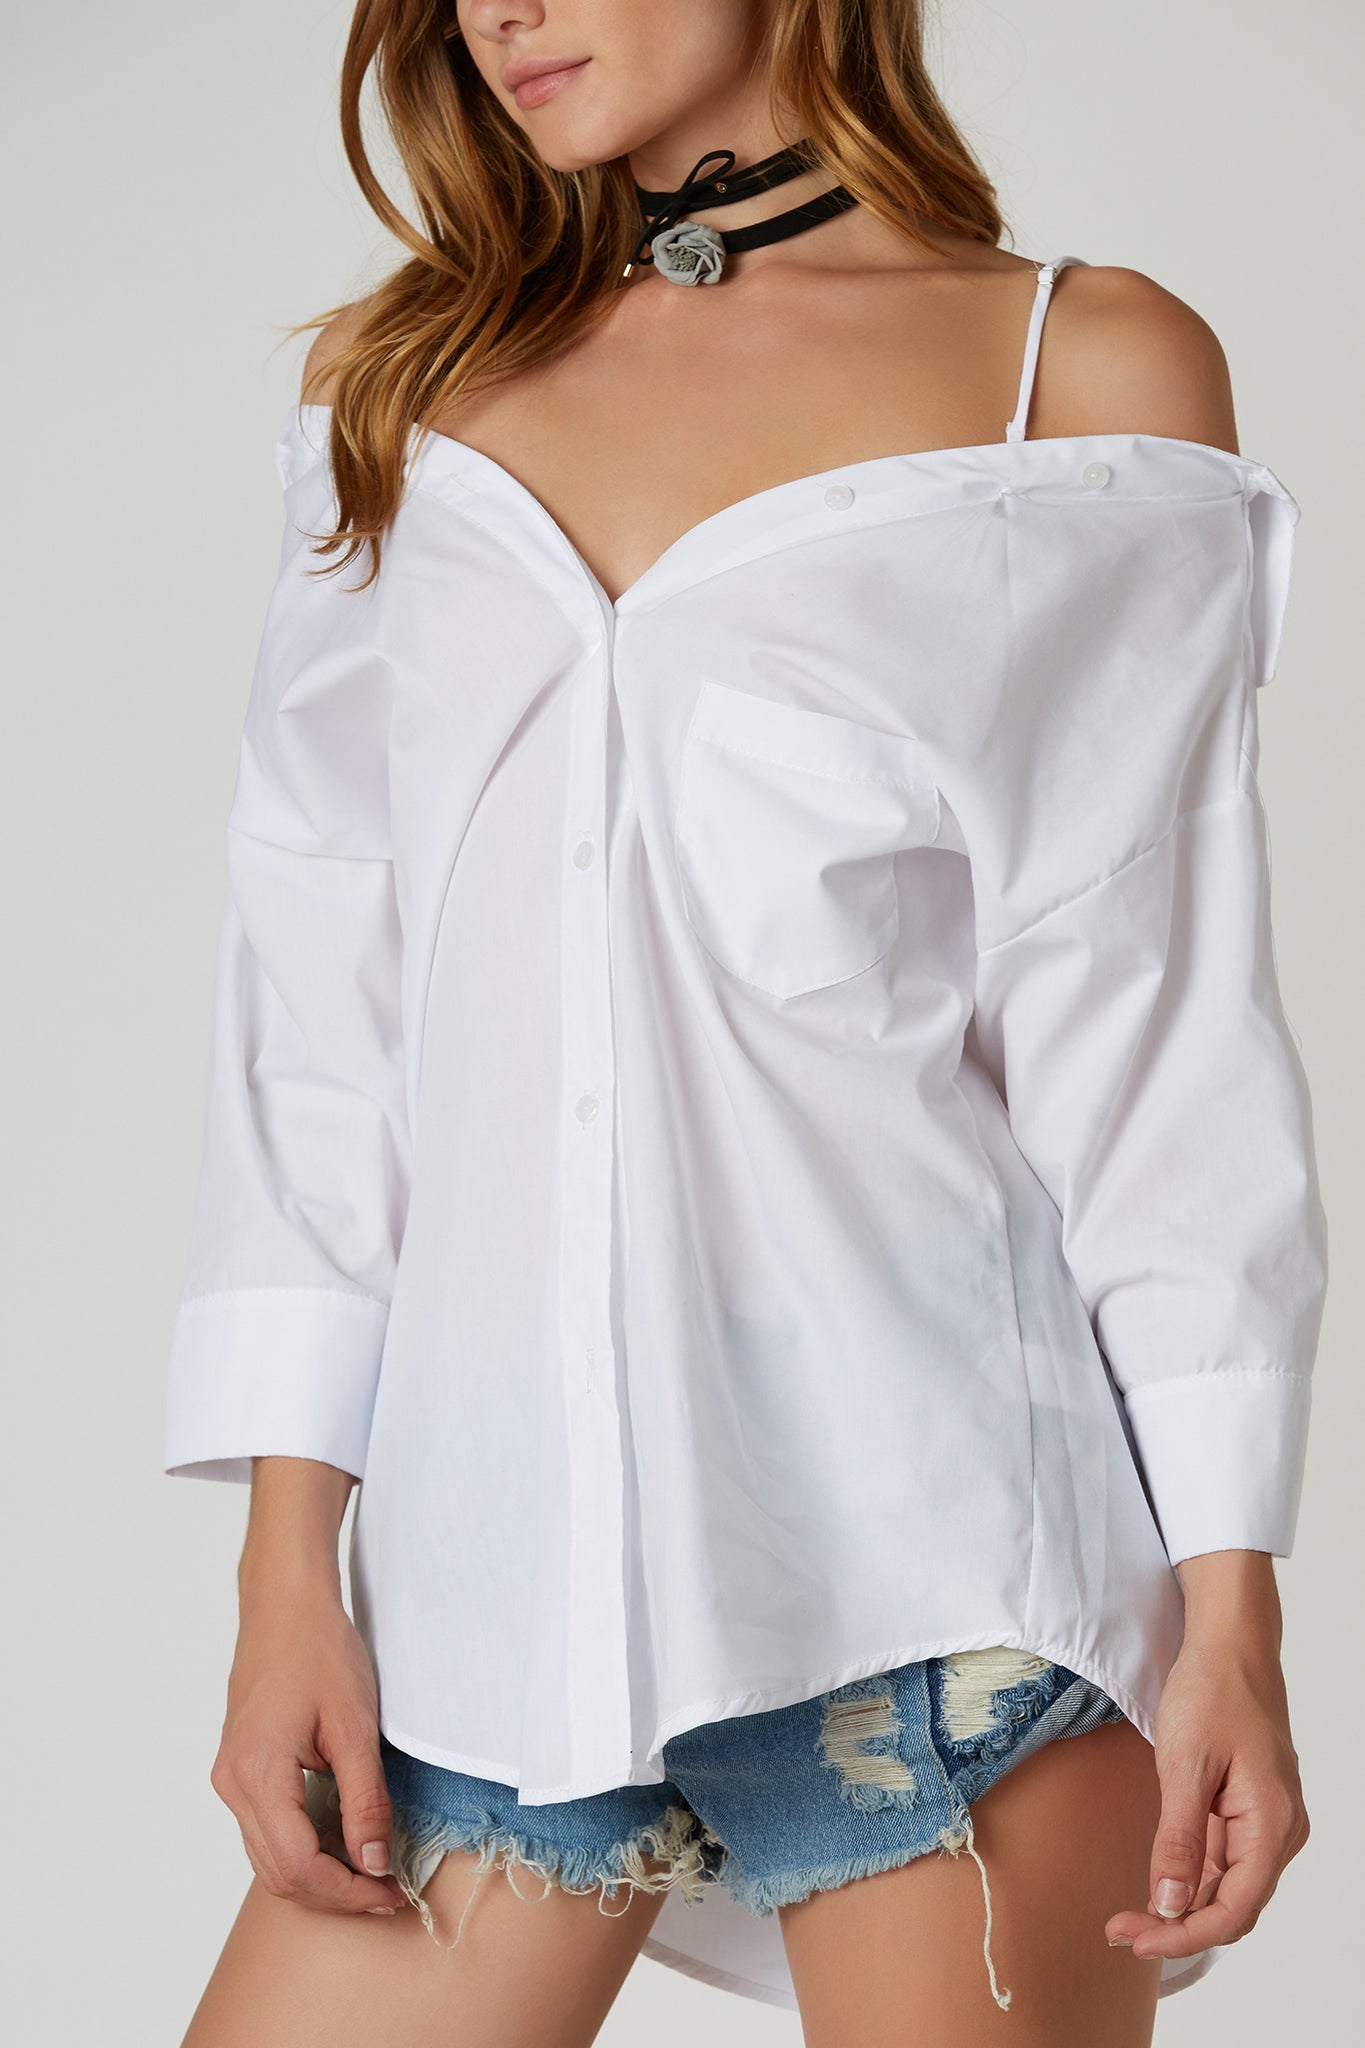 Chic cold shoulder blouse with oversized fit. Button front closure with longline hem.